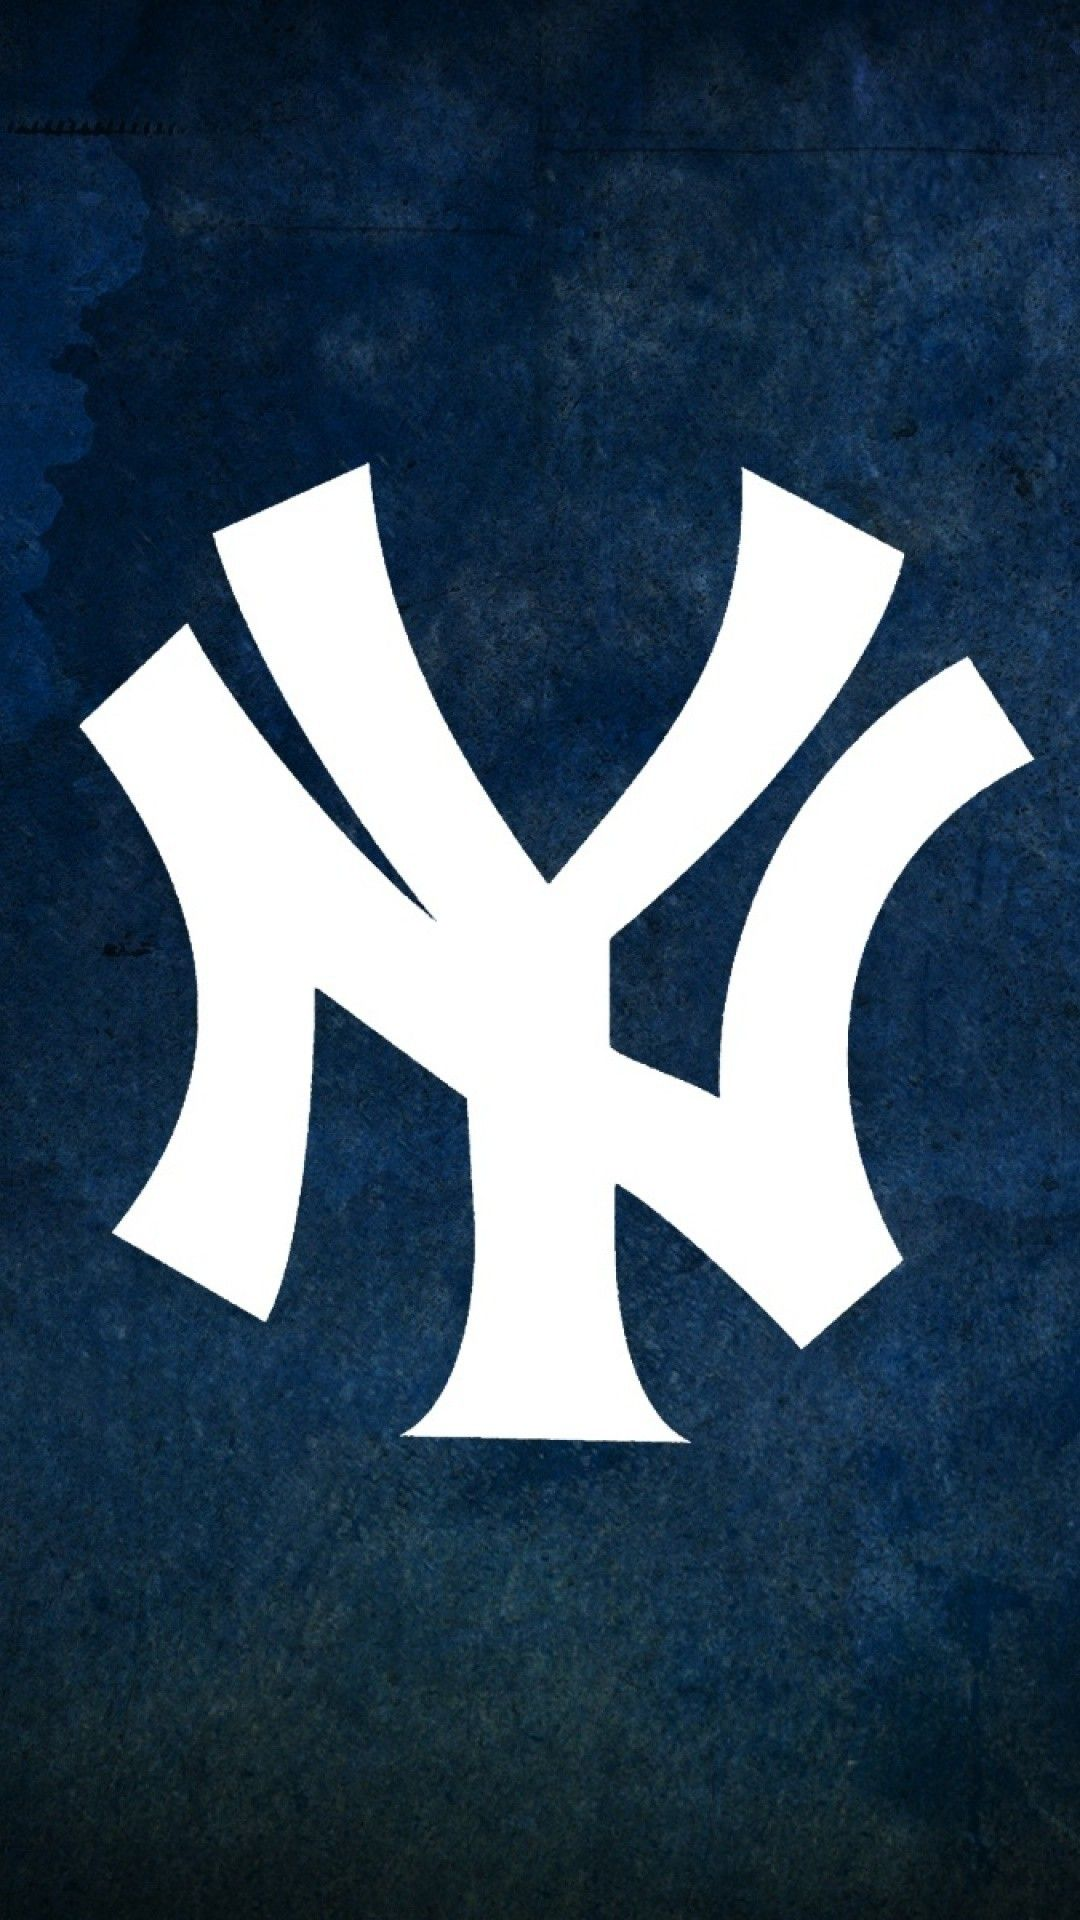 1080x1920 73+ Ny Yankees Wallpapers on WallpaperPlay